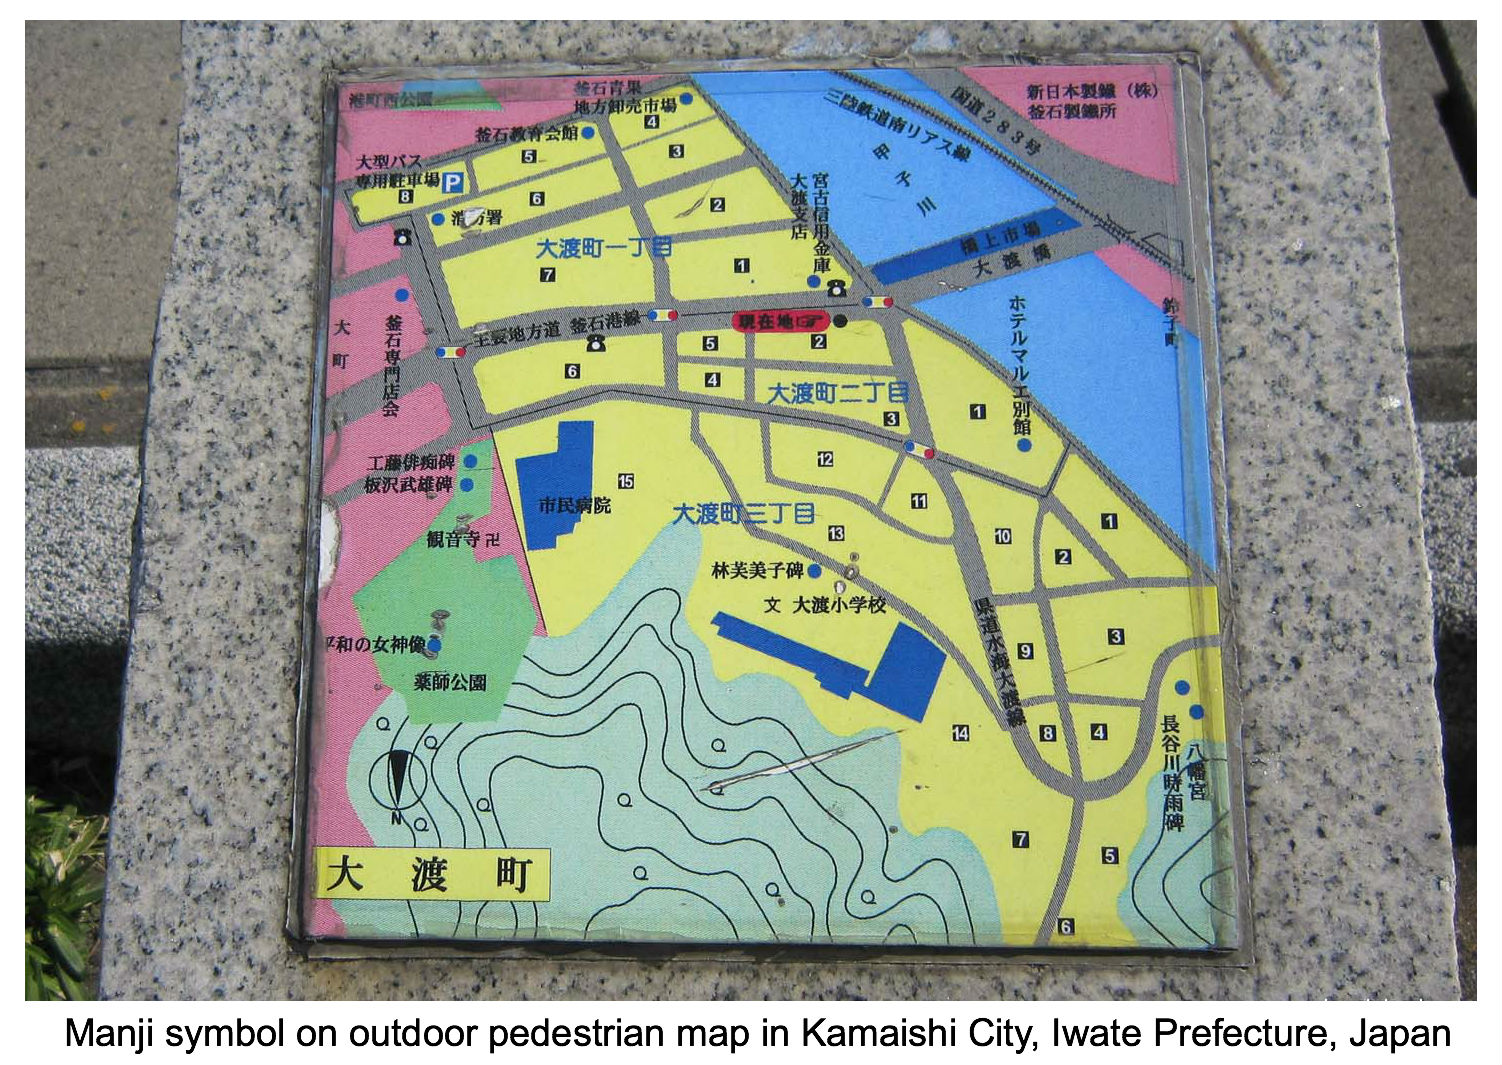 Swastika icon indicates temple on local map in Japan